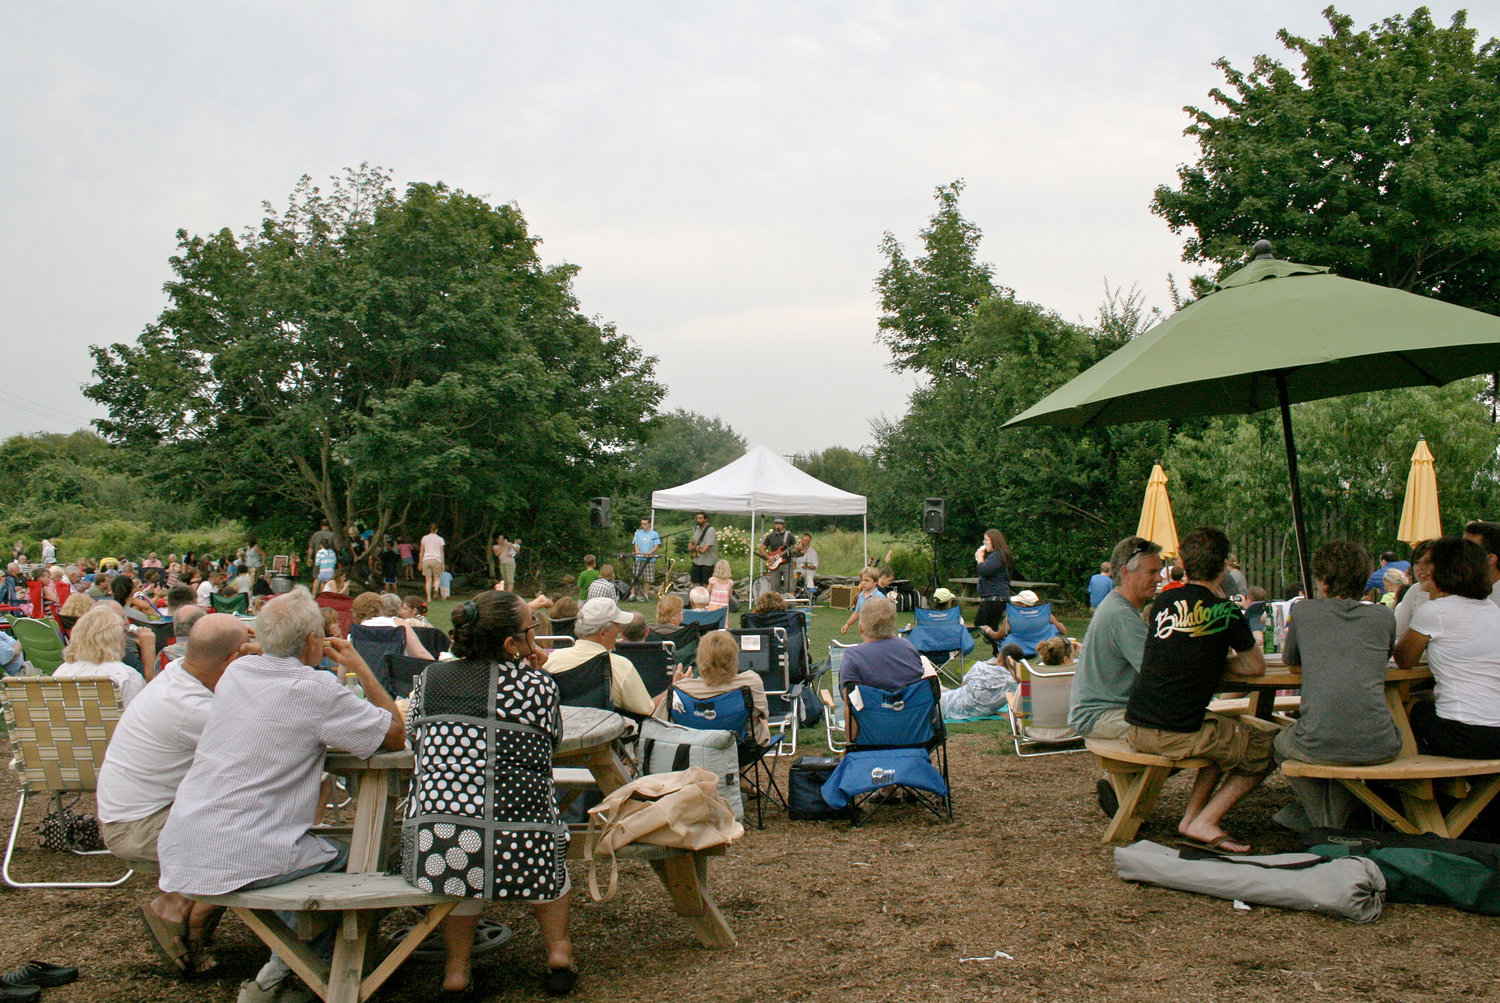 Tuesday night concerts